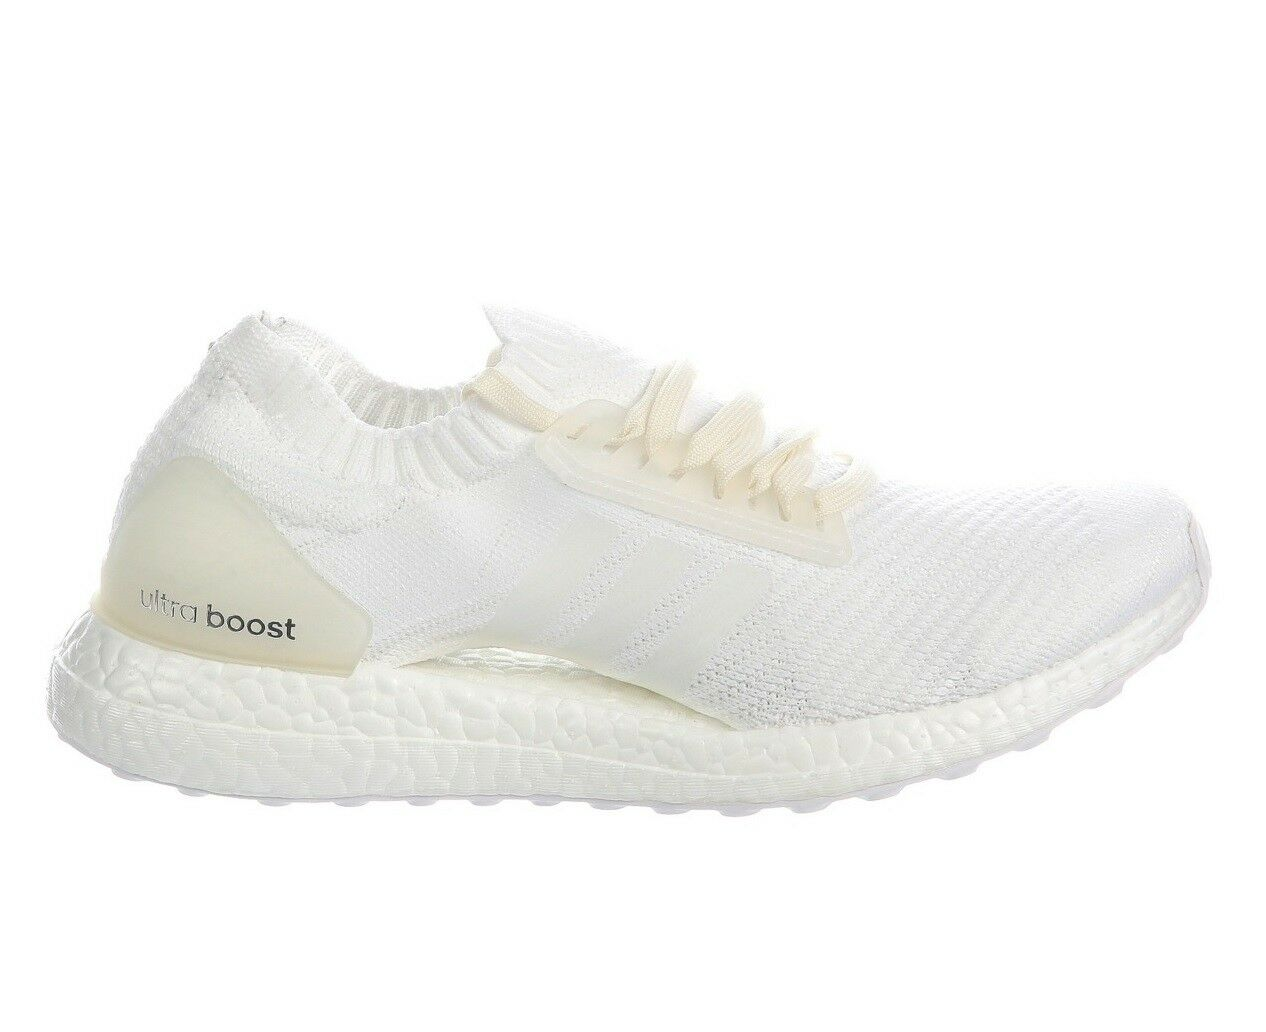 Adidas Ultra Boost X Undye Womens BB6159 Size Nondye Primeknit Running Shoes Size BB6159 6 3321ea